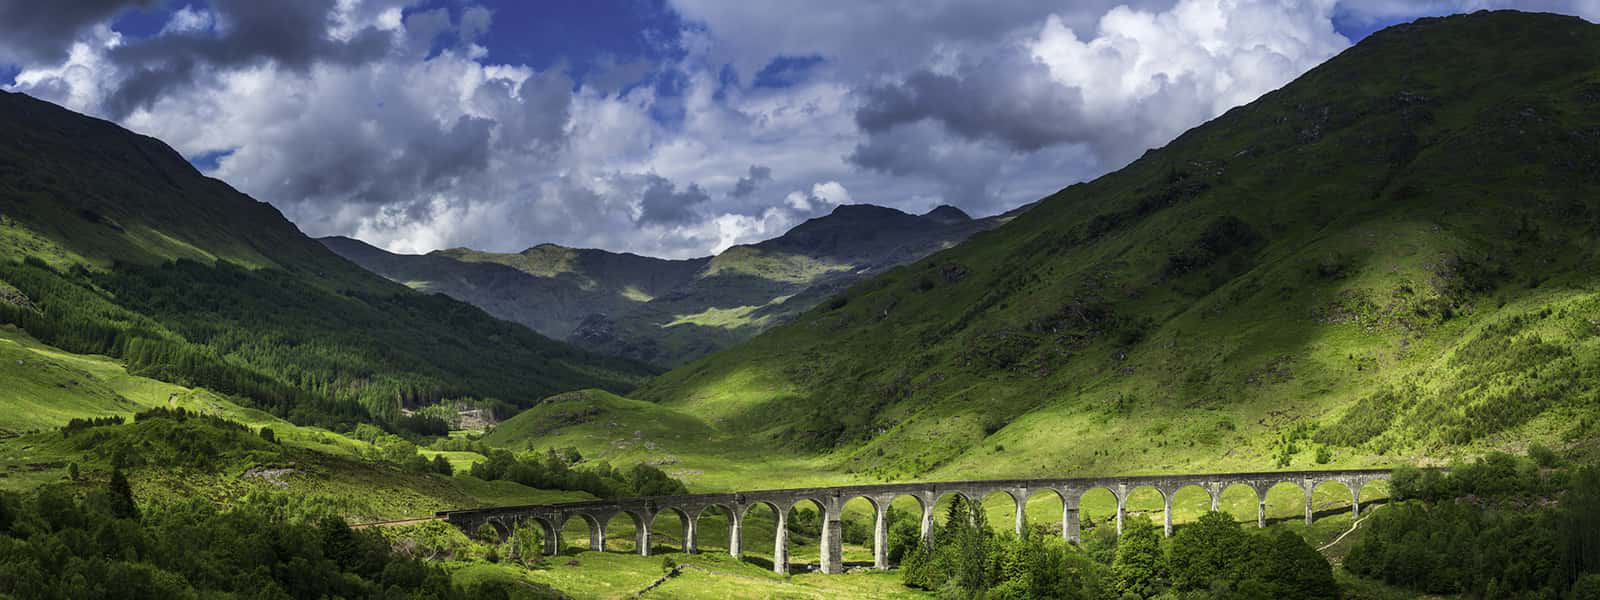 Summer sunlight illuminating the iconic arches of the Gelnfinnan Viaduct